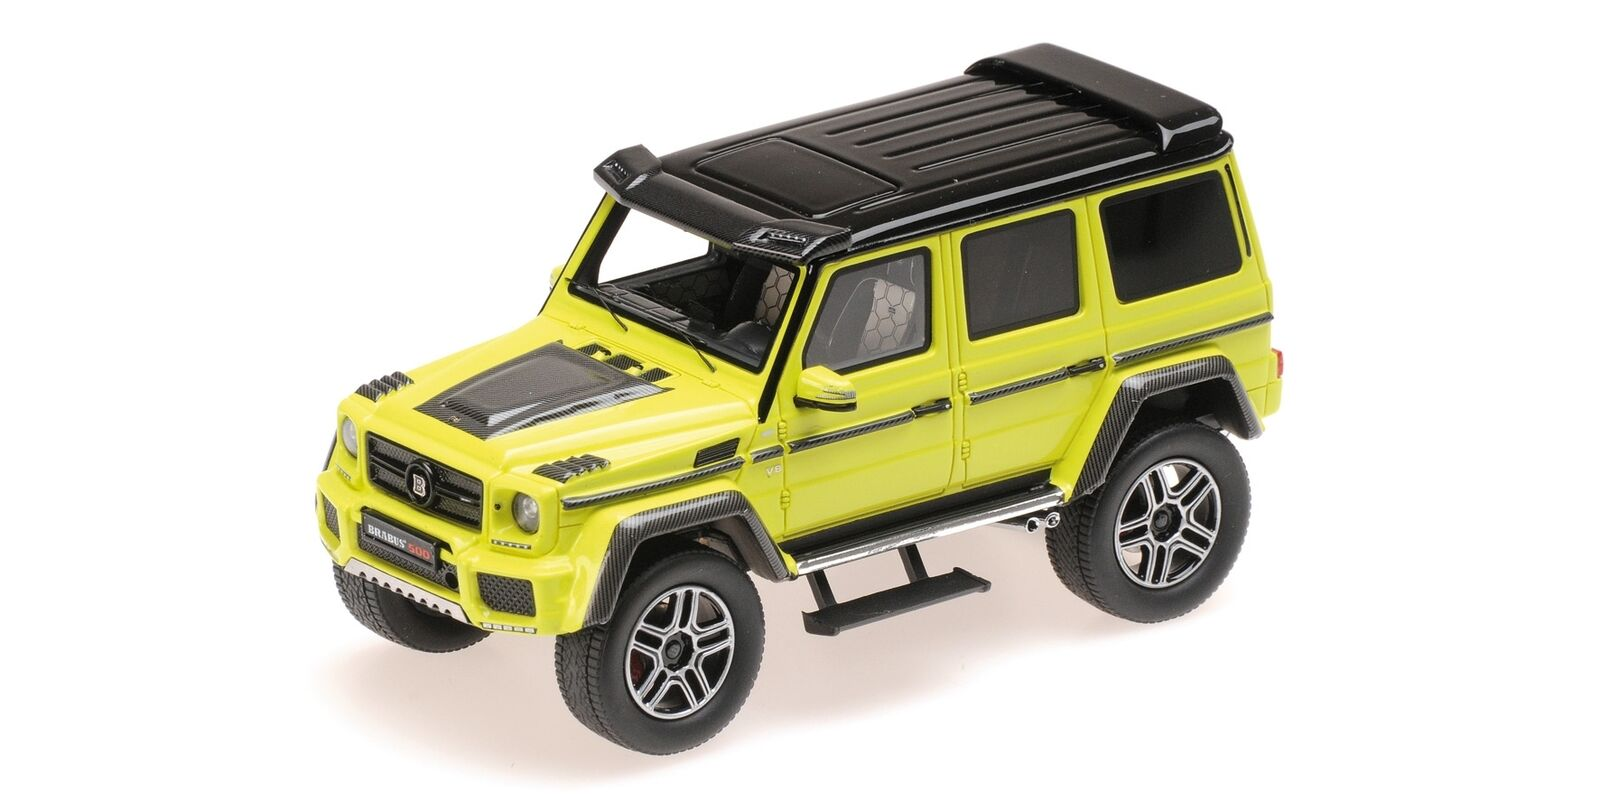 Brabus 4X4 Auf Basis Mercedes Benz G500 giallo 2016 MINICHAMPS 1:43 437032464